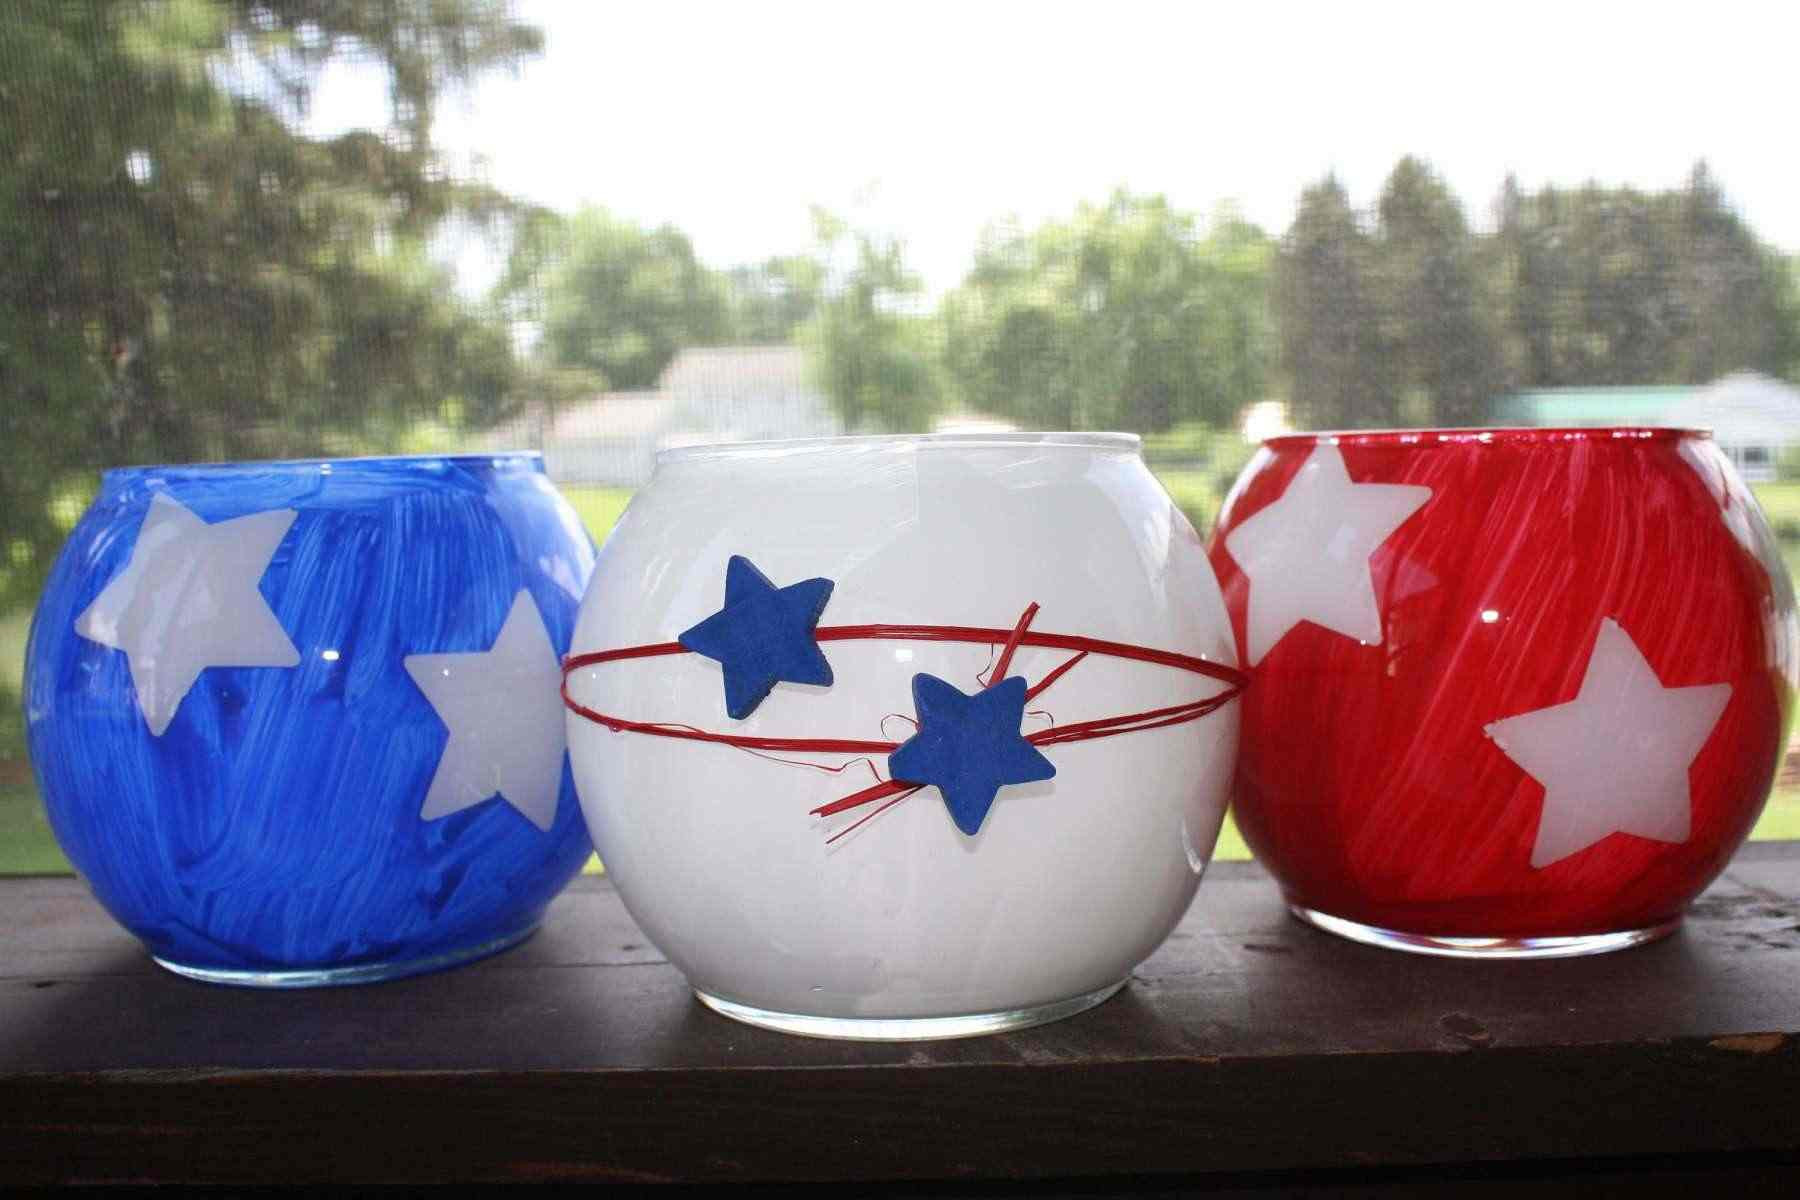 clear blue glass vases of blue glass candle holder new since star candle holders american flag for blue glass candle holder new since star candle holders american flag candle holders red whi